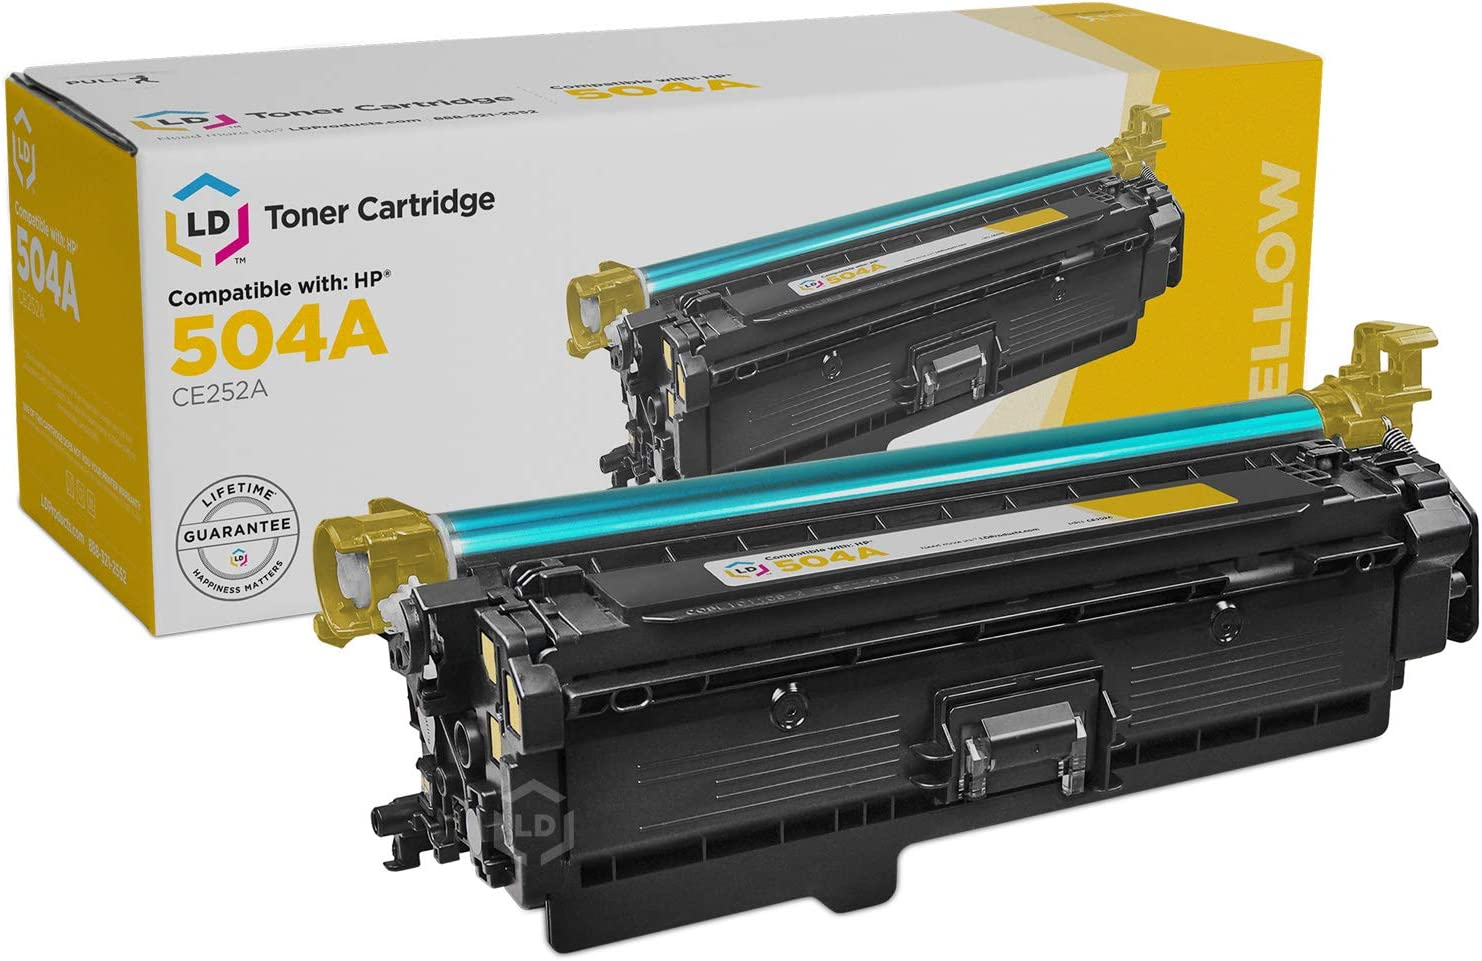 LD Remanufactured Toner Cartridge Replacement for HP 504A CE252A (Yellow)